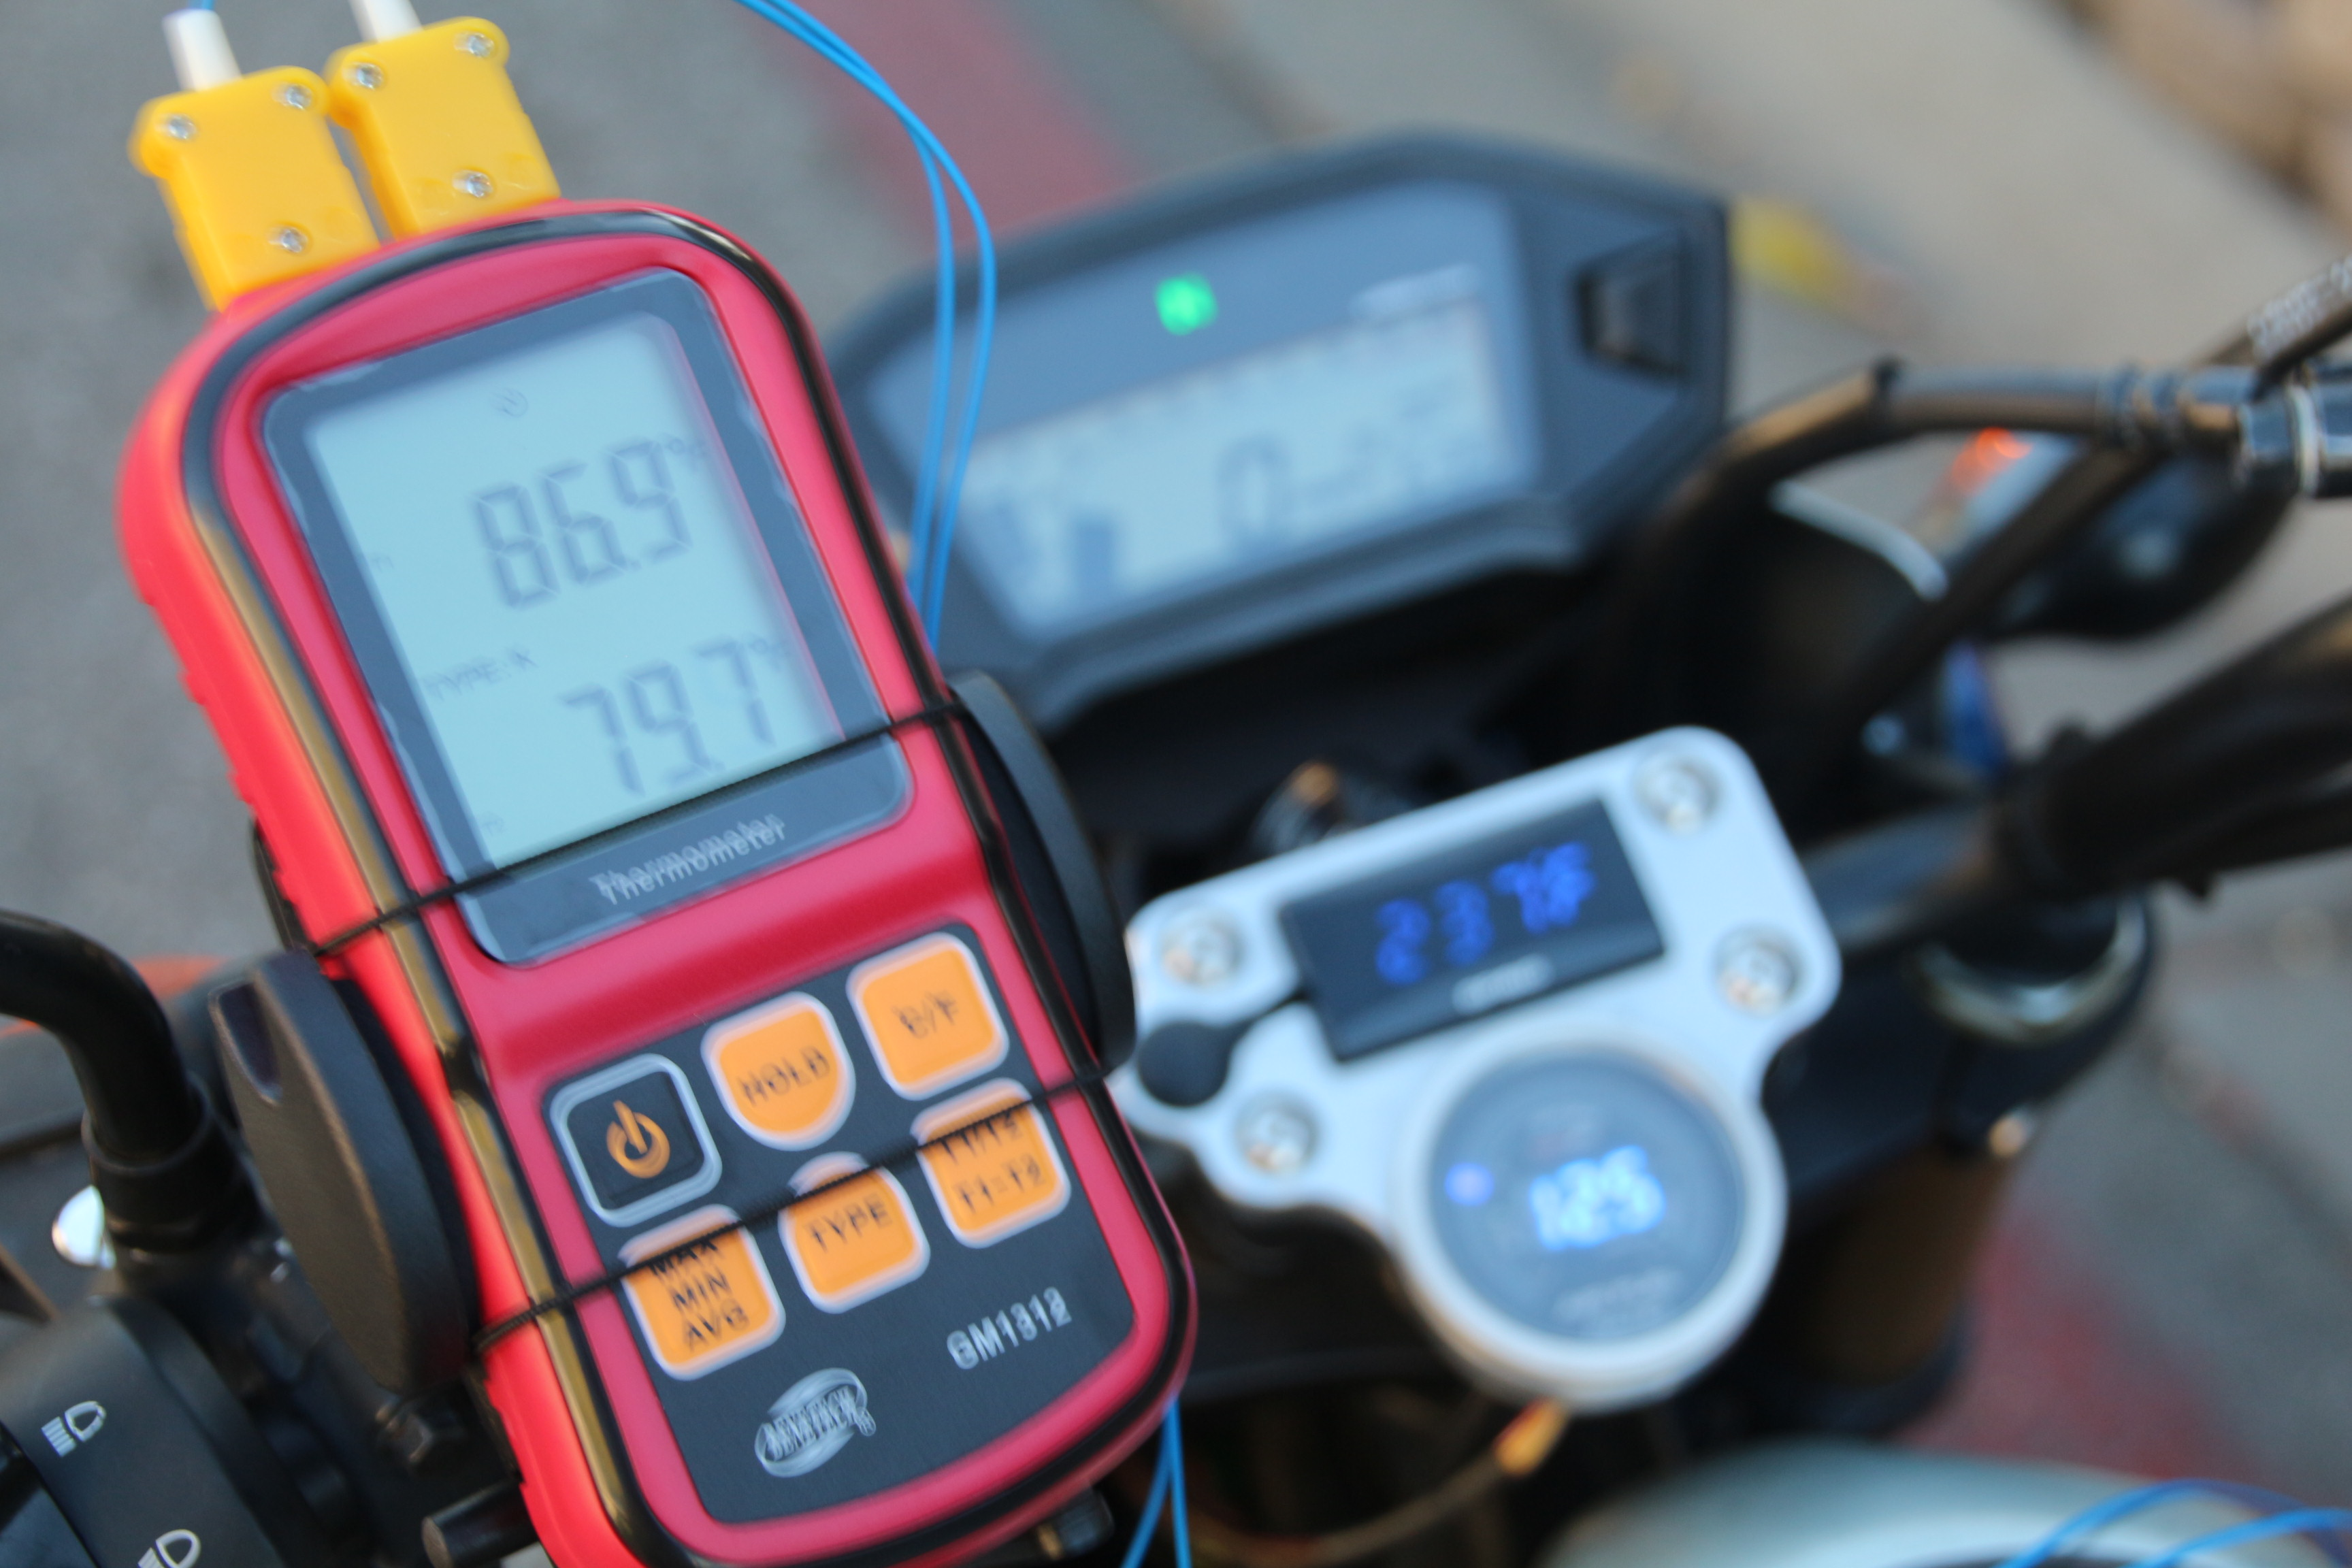 BBK Koso 170 or Kitaco Neo 181-grom-gauges-monitoring.jpg